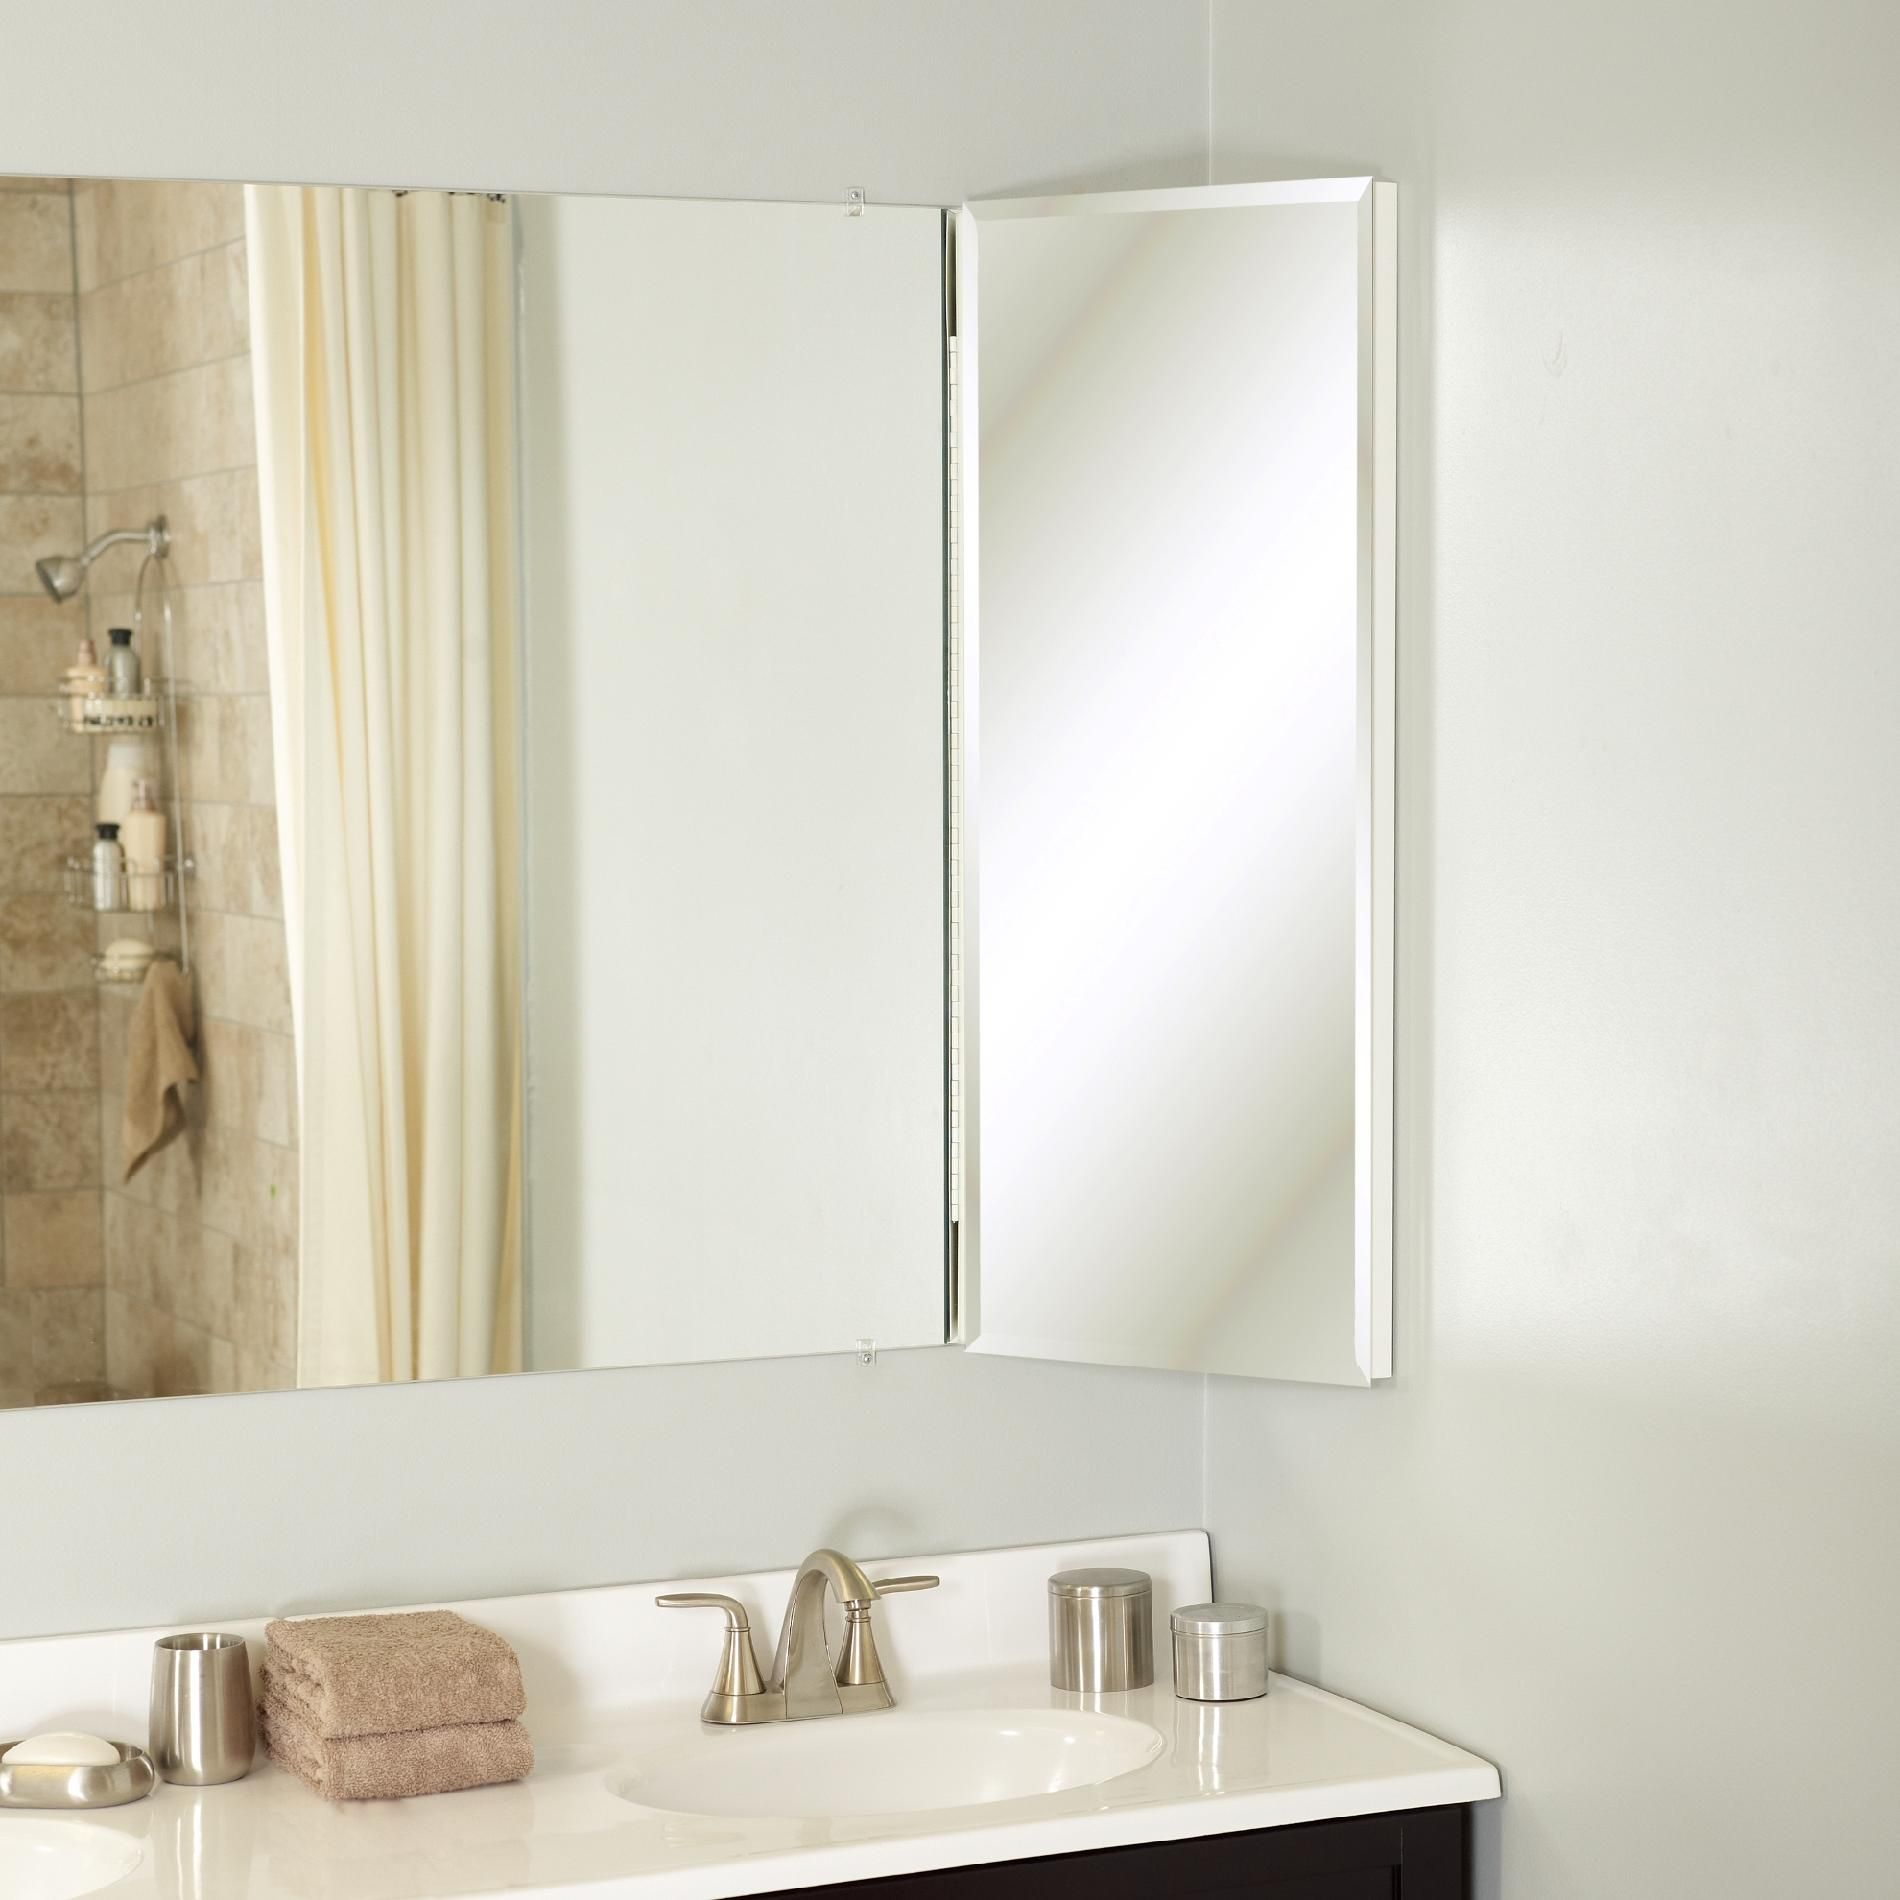 Zenith Products Over The Mirror Corner Cabinet 14 U0026quot X 36